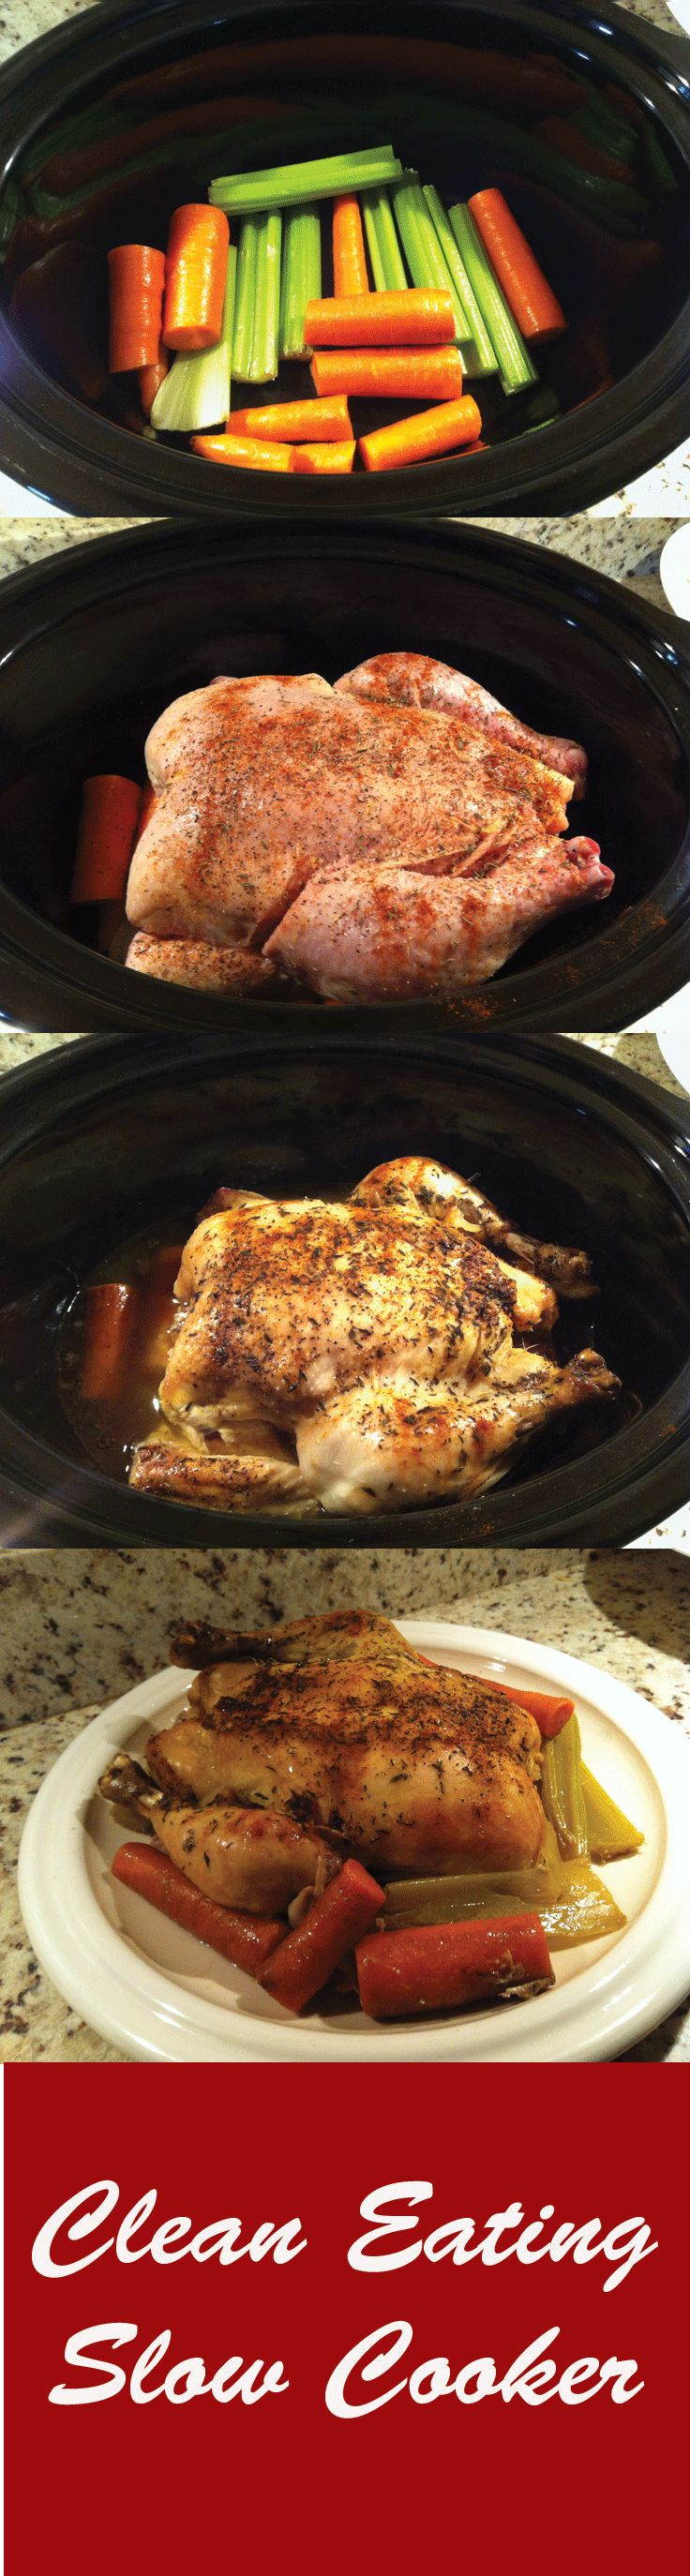 Clean eating recipe in the slow cooker. Moist chicken that is easy and healthy. I will definitely be cooking this ASAP!